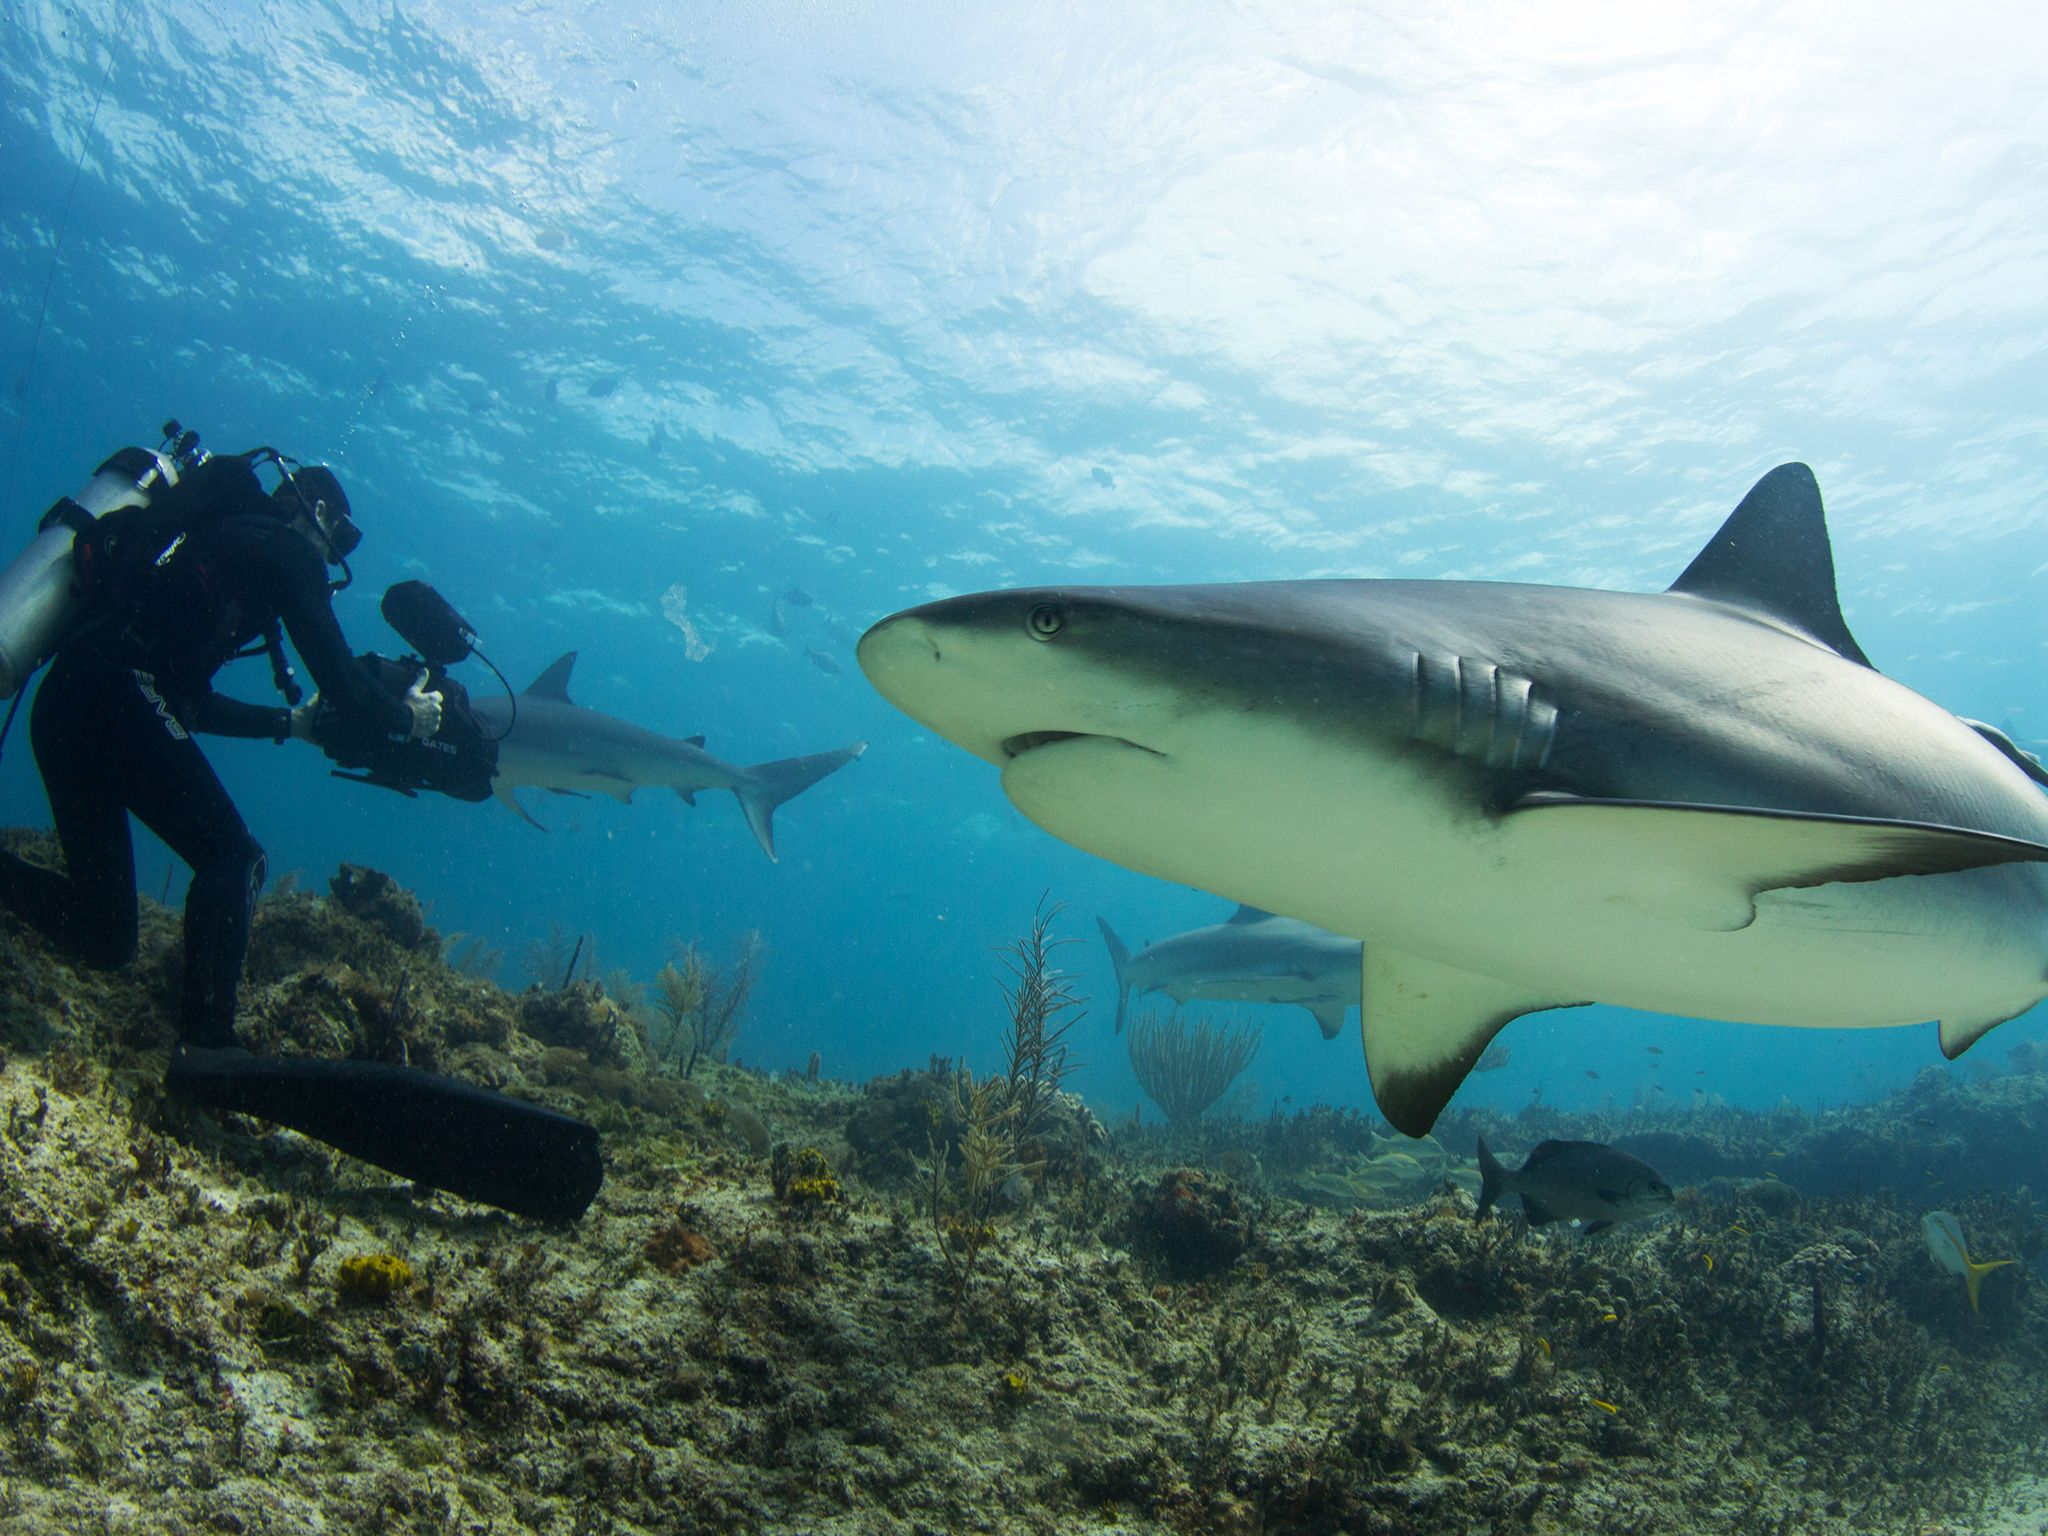 Palmyra Atoll: Tiger Shark and camerman. Dr. M. Sanjayan dives deep into the oceans to find out... [Photo of the day - مارس 2015]